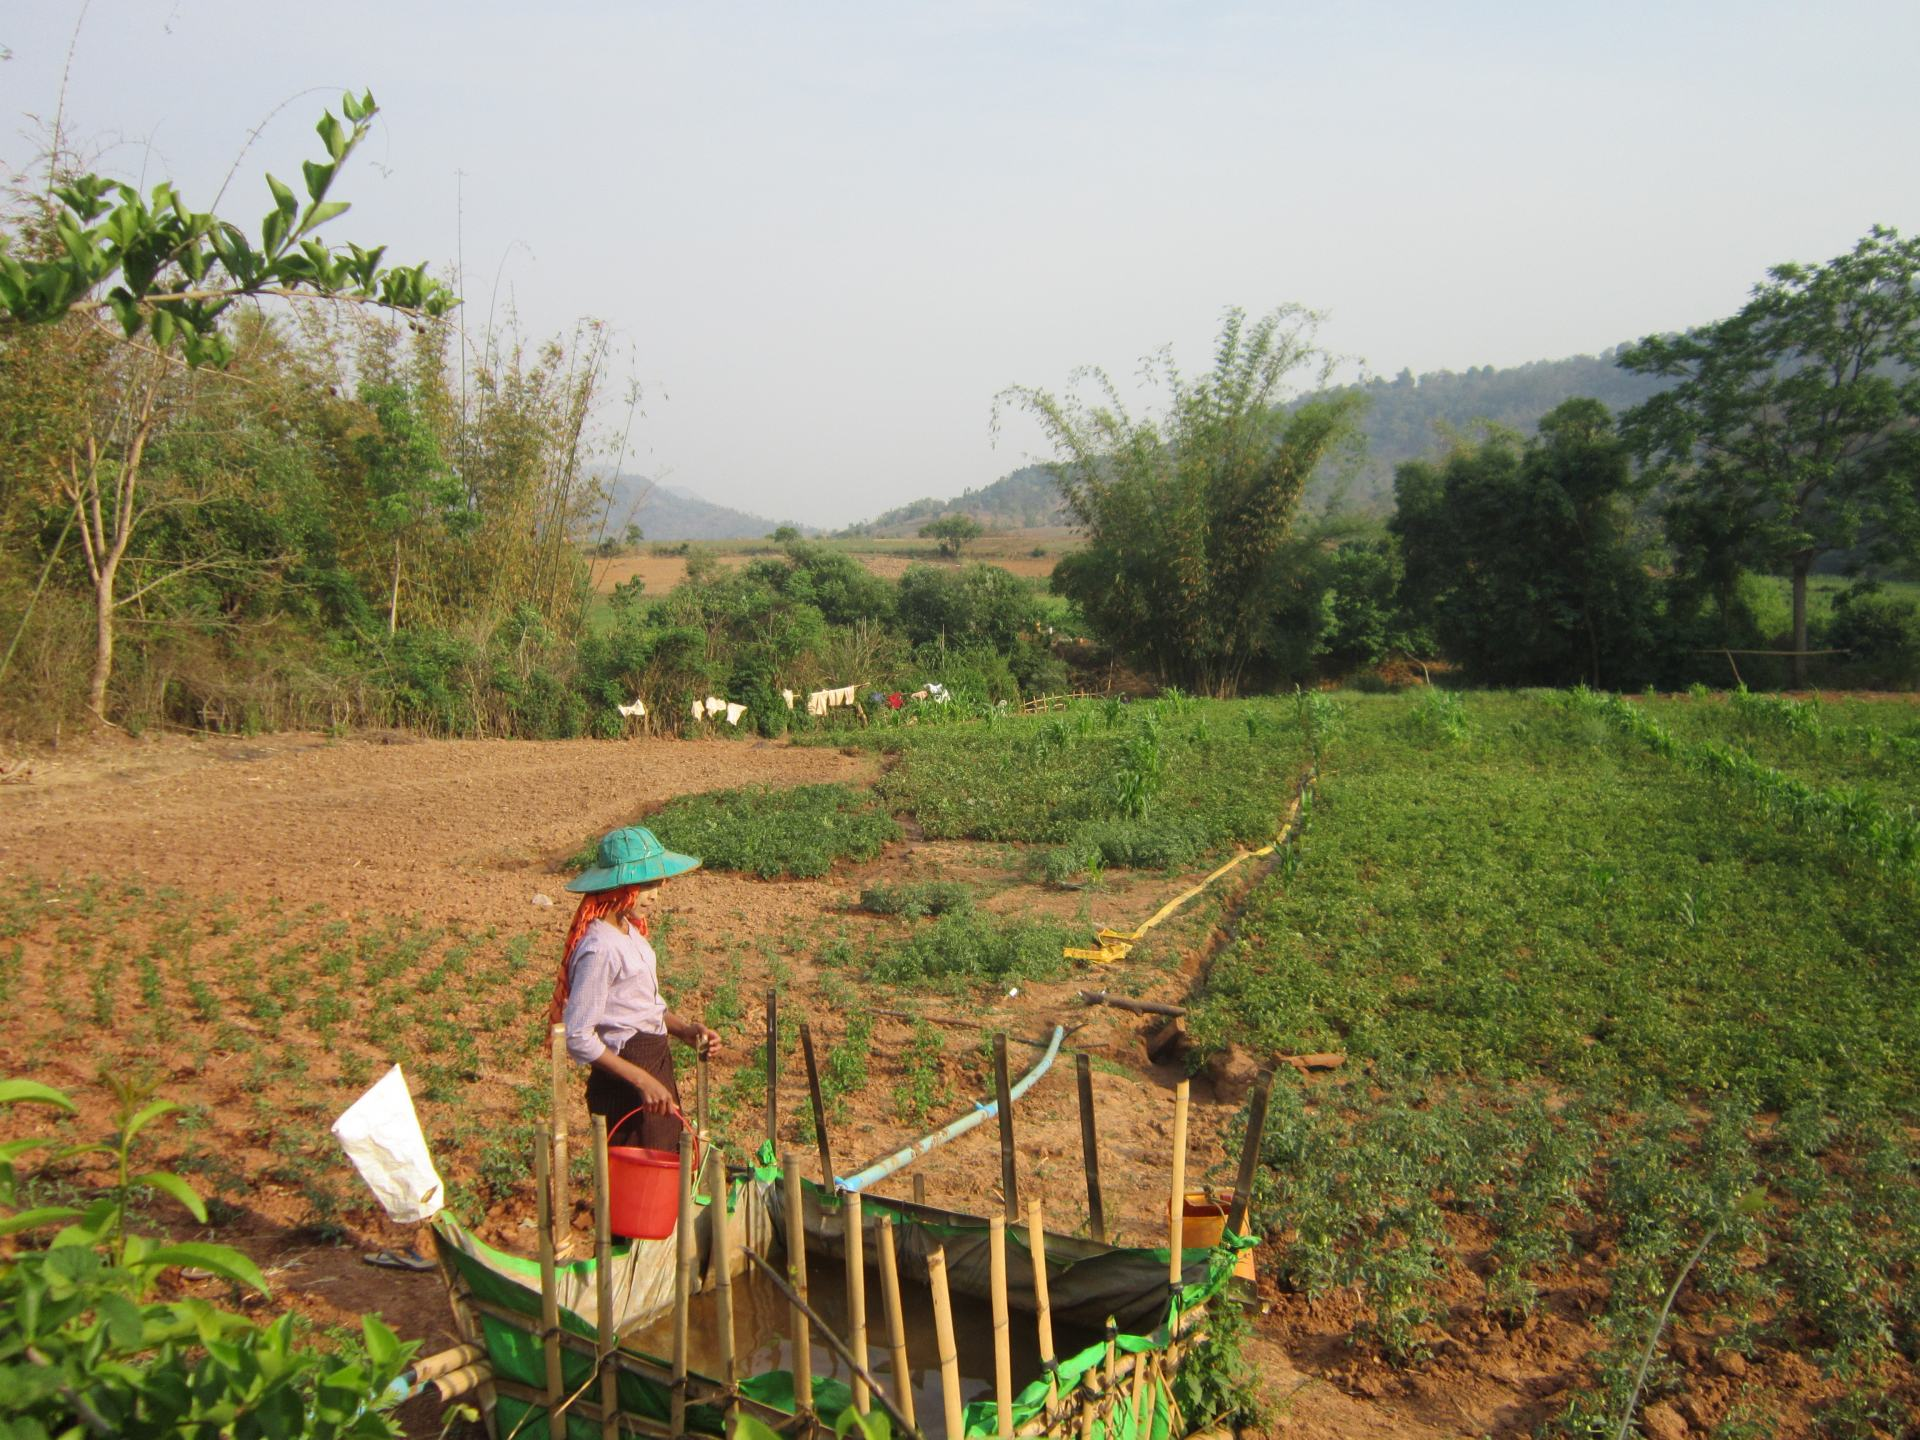 A farmer in Shan State tending to their farm. Seen on the route between Kalaw and Inle Lake, one of the most well known treks in Southeast Asia.